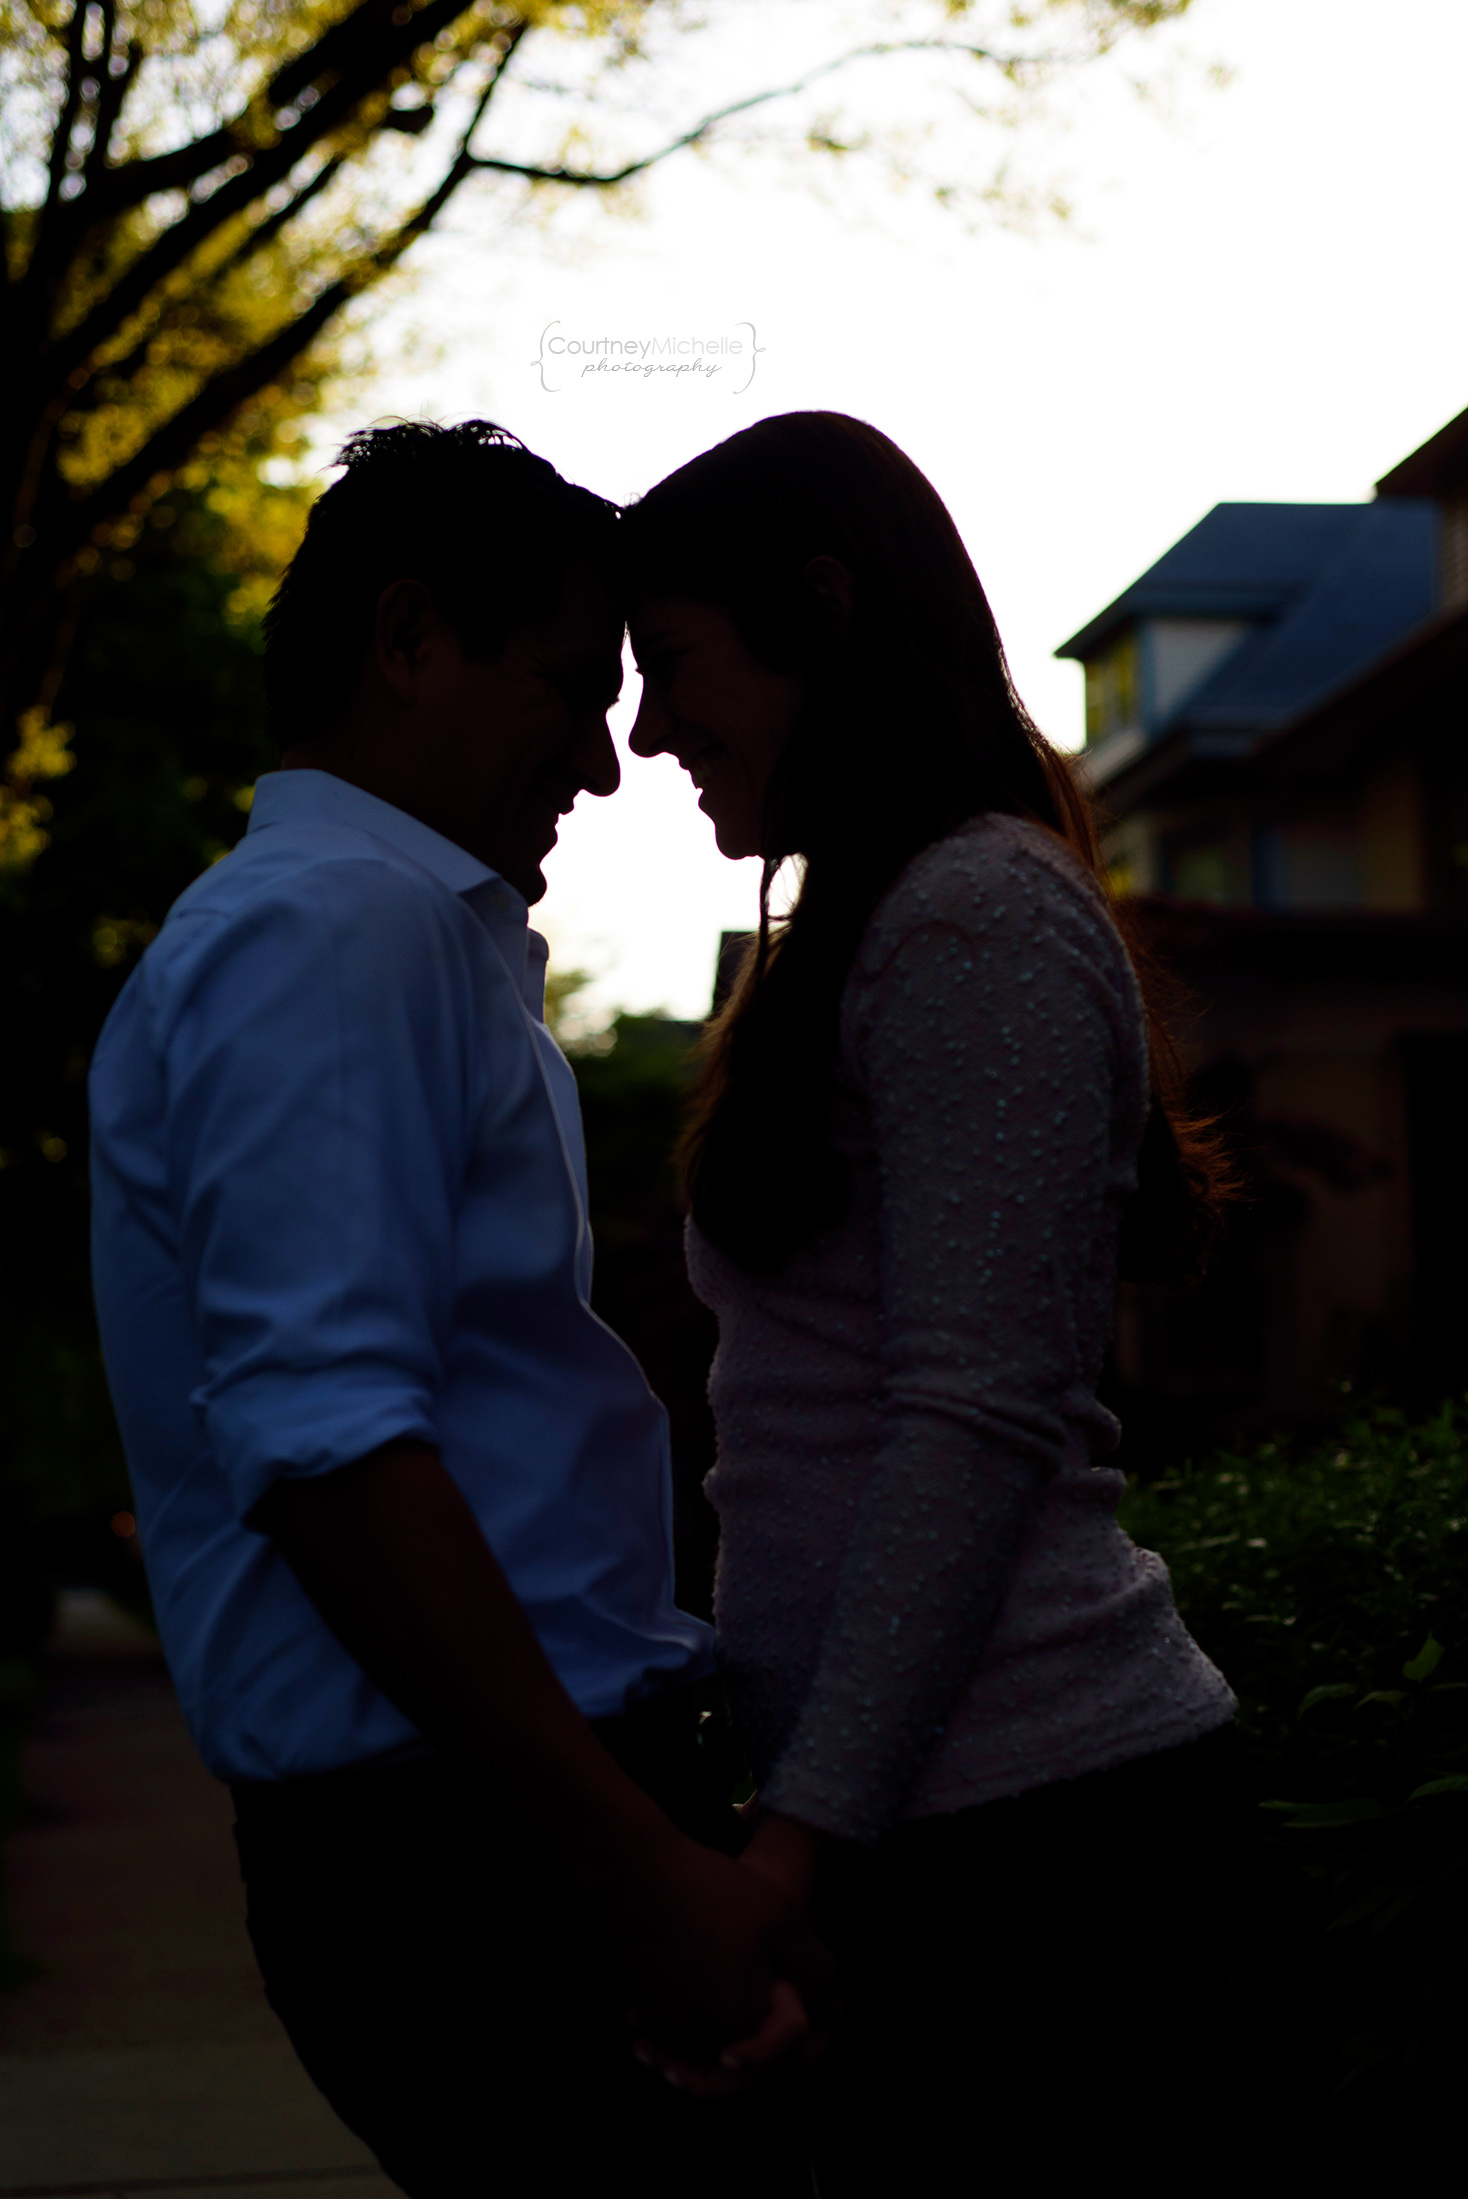 north-center-chicago-engagement-photography-by-courtney-laper©COPYRIGHTCMP-edit-1228.jpg